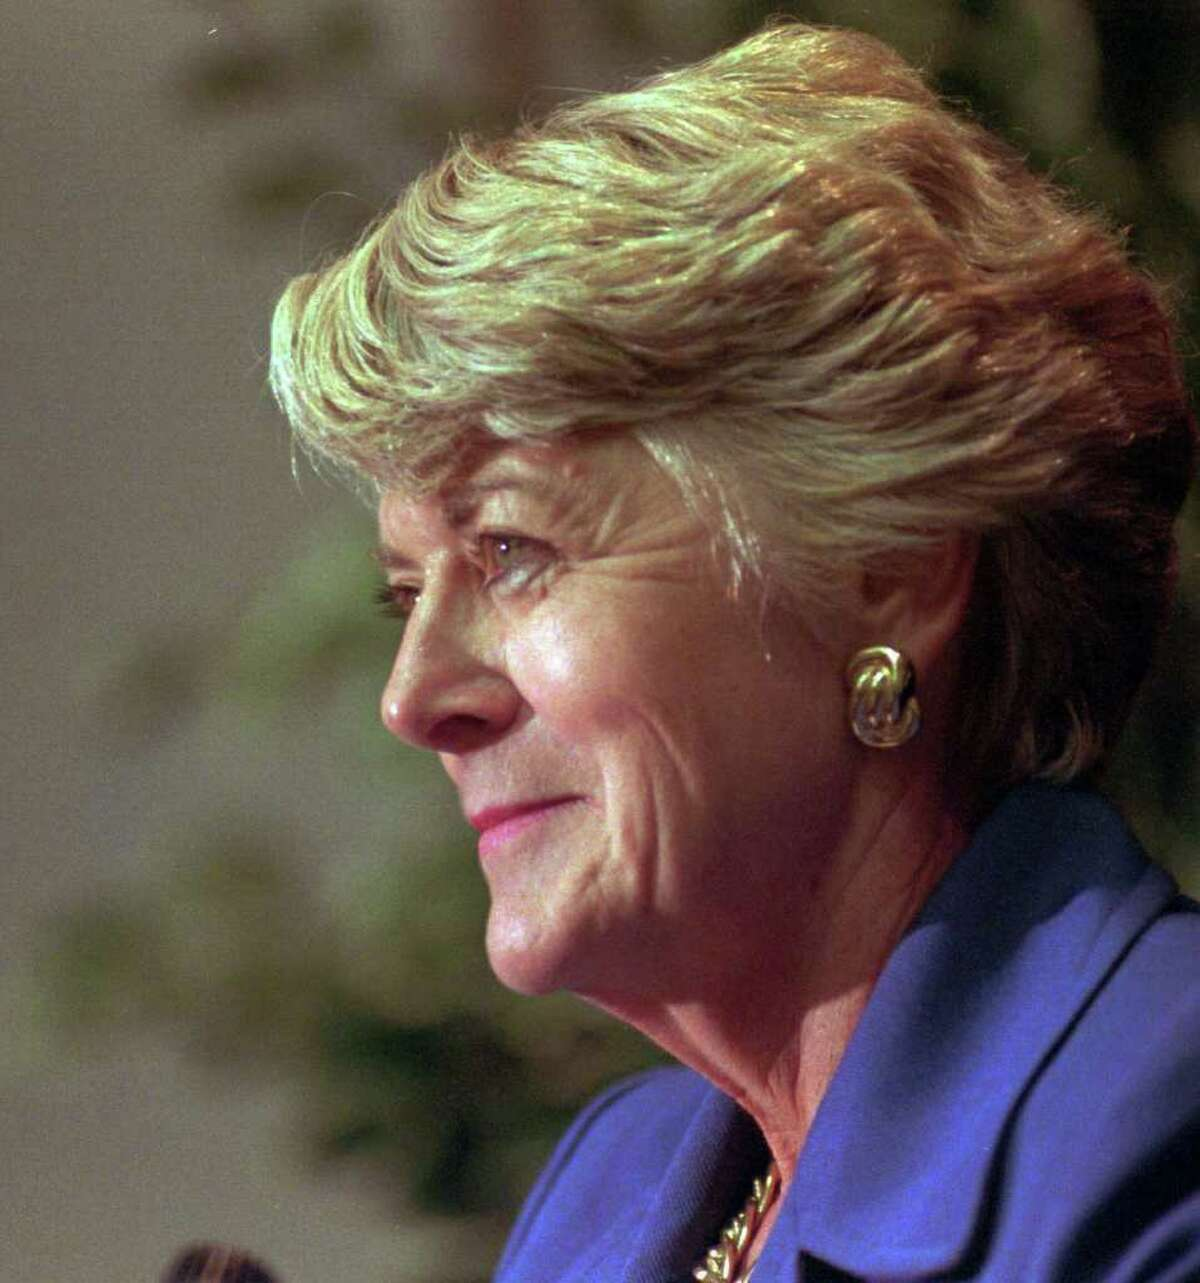 FILE--Geraldine Ferraro smiles during a news conference in this Monday, Jan. 5, 1998 file photo, in Albany, N.Y. Ferraro, the Democratic Party nominee for vice president in 1984, is battling blood cancer, The New York Times reported Tuesday, June 19, 2001. Ferraro was diagnosed with multiple myeloma after a routine physical in December 1998. She has been prescribed thalidomide, which was banned decades ago after it was linked to birth defects among babies of pregnant women who took it.